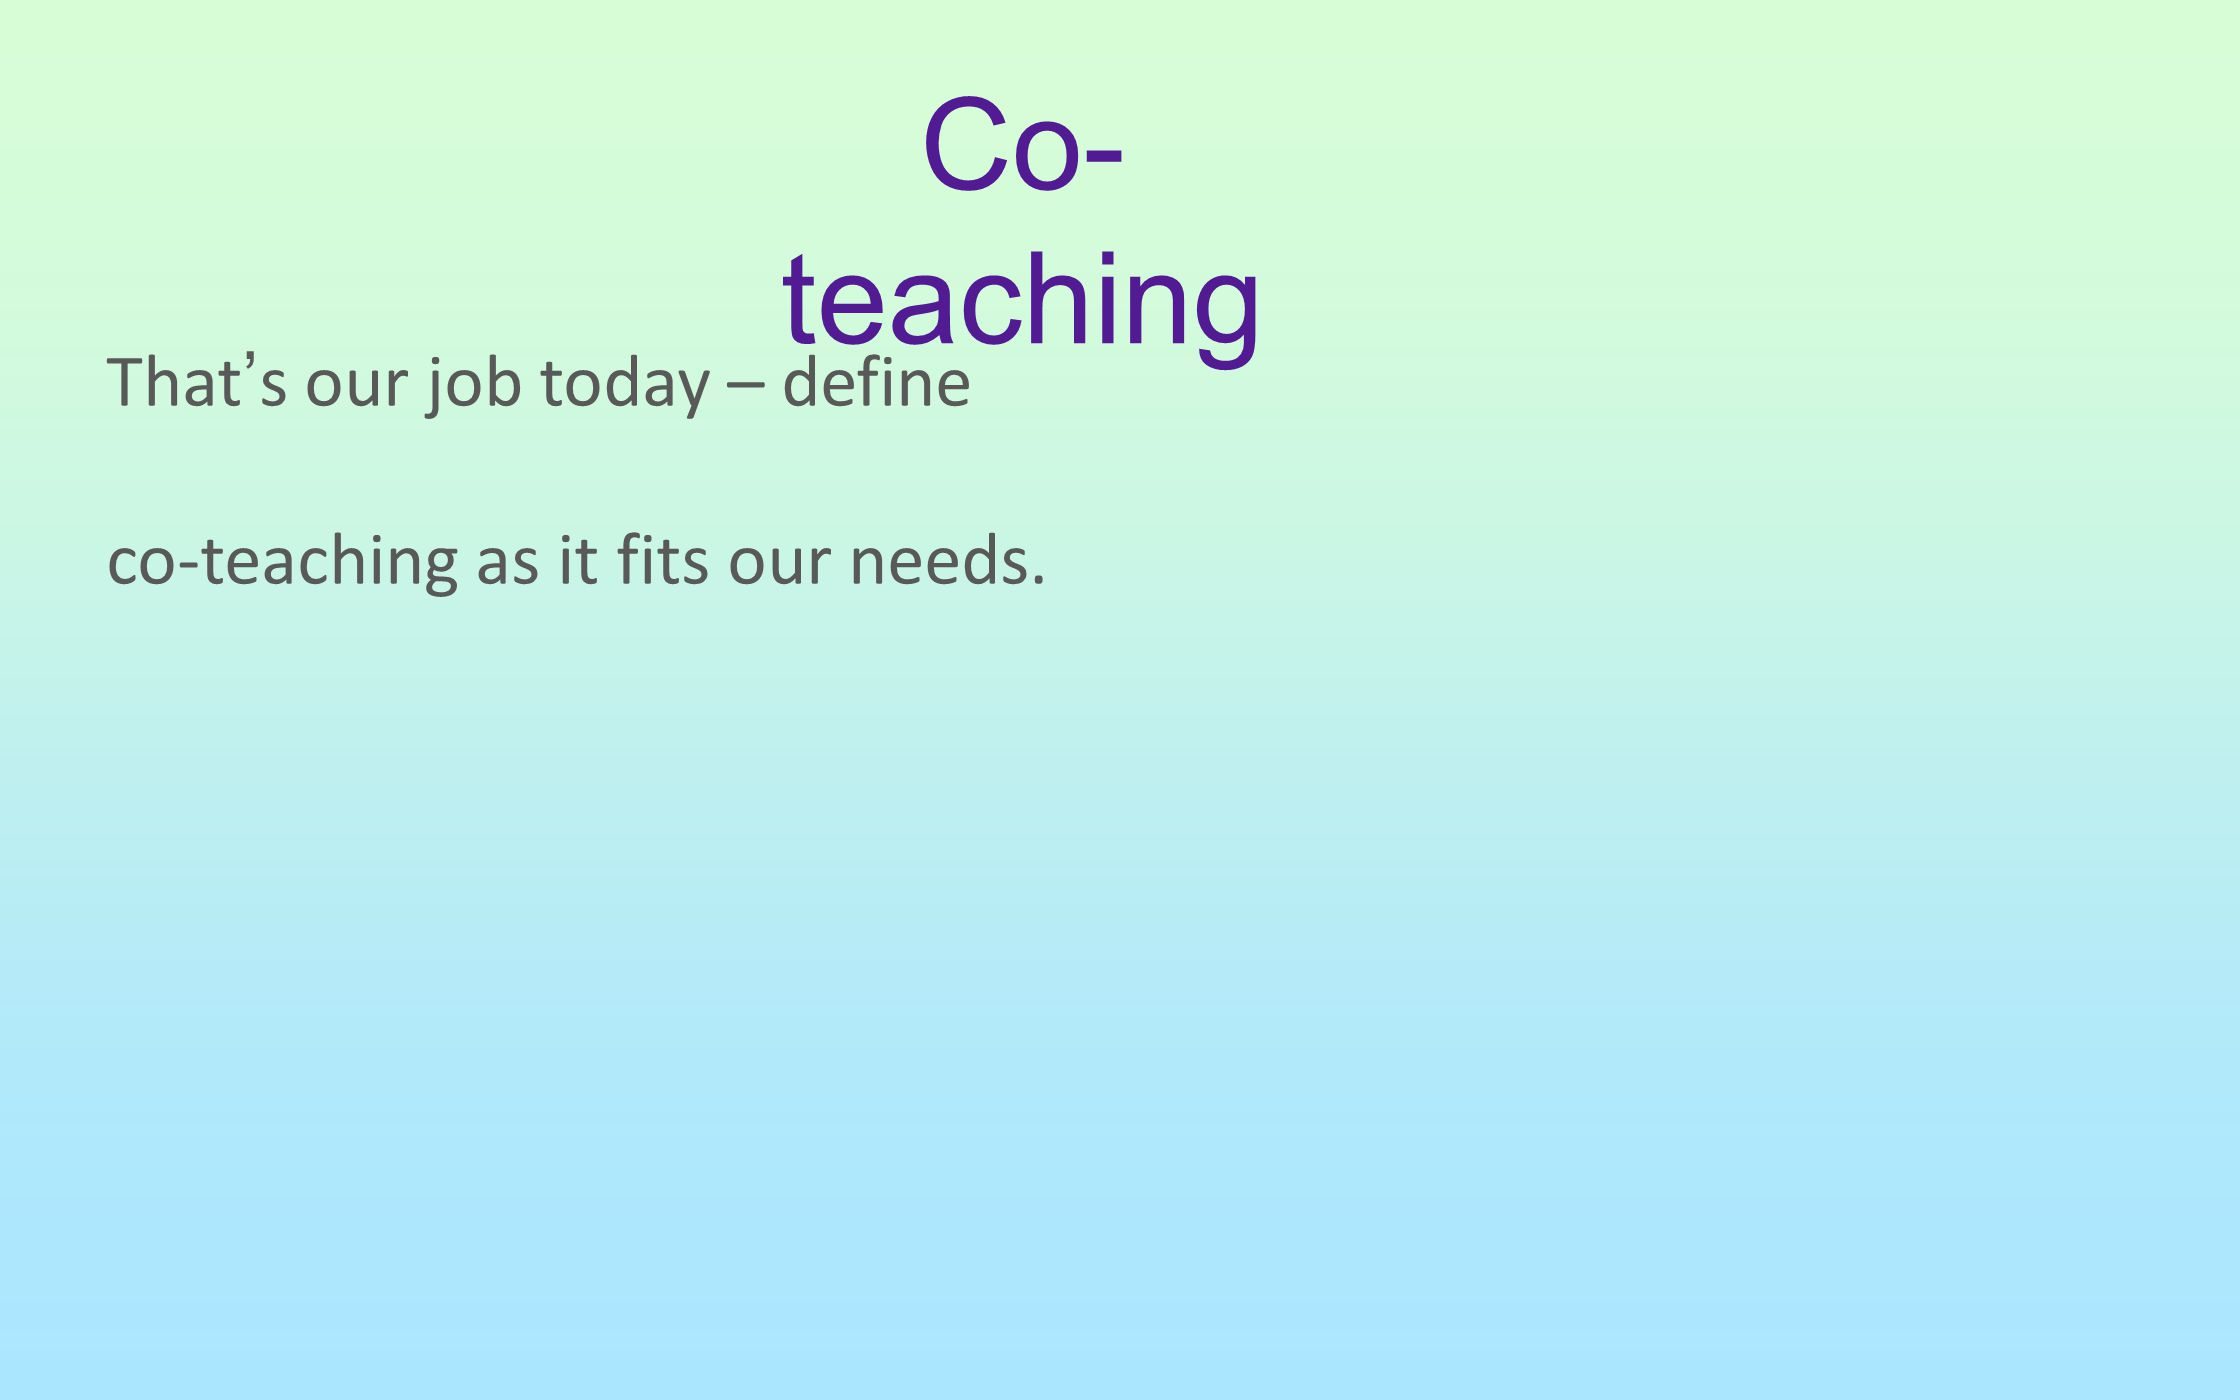 That's our job today – define co-teaching as it fits our needs.